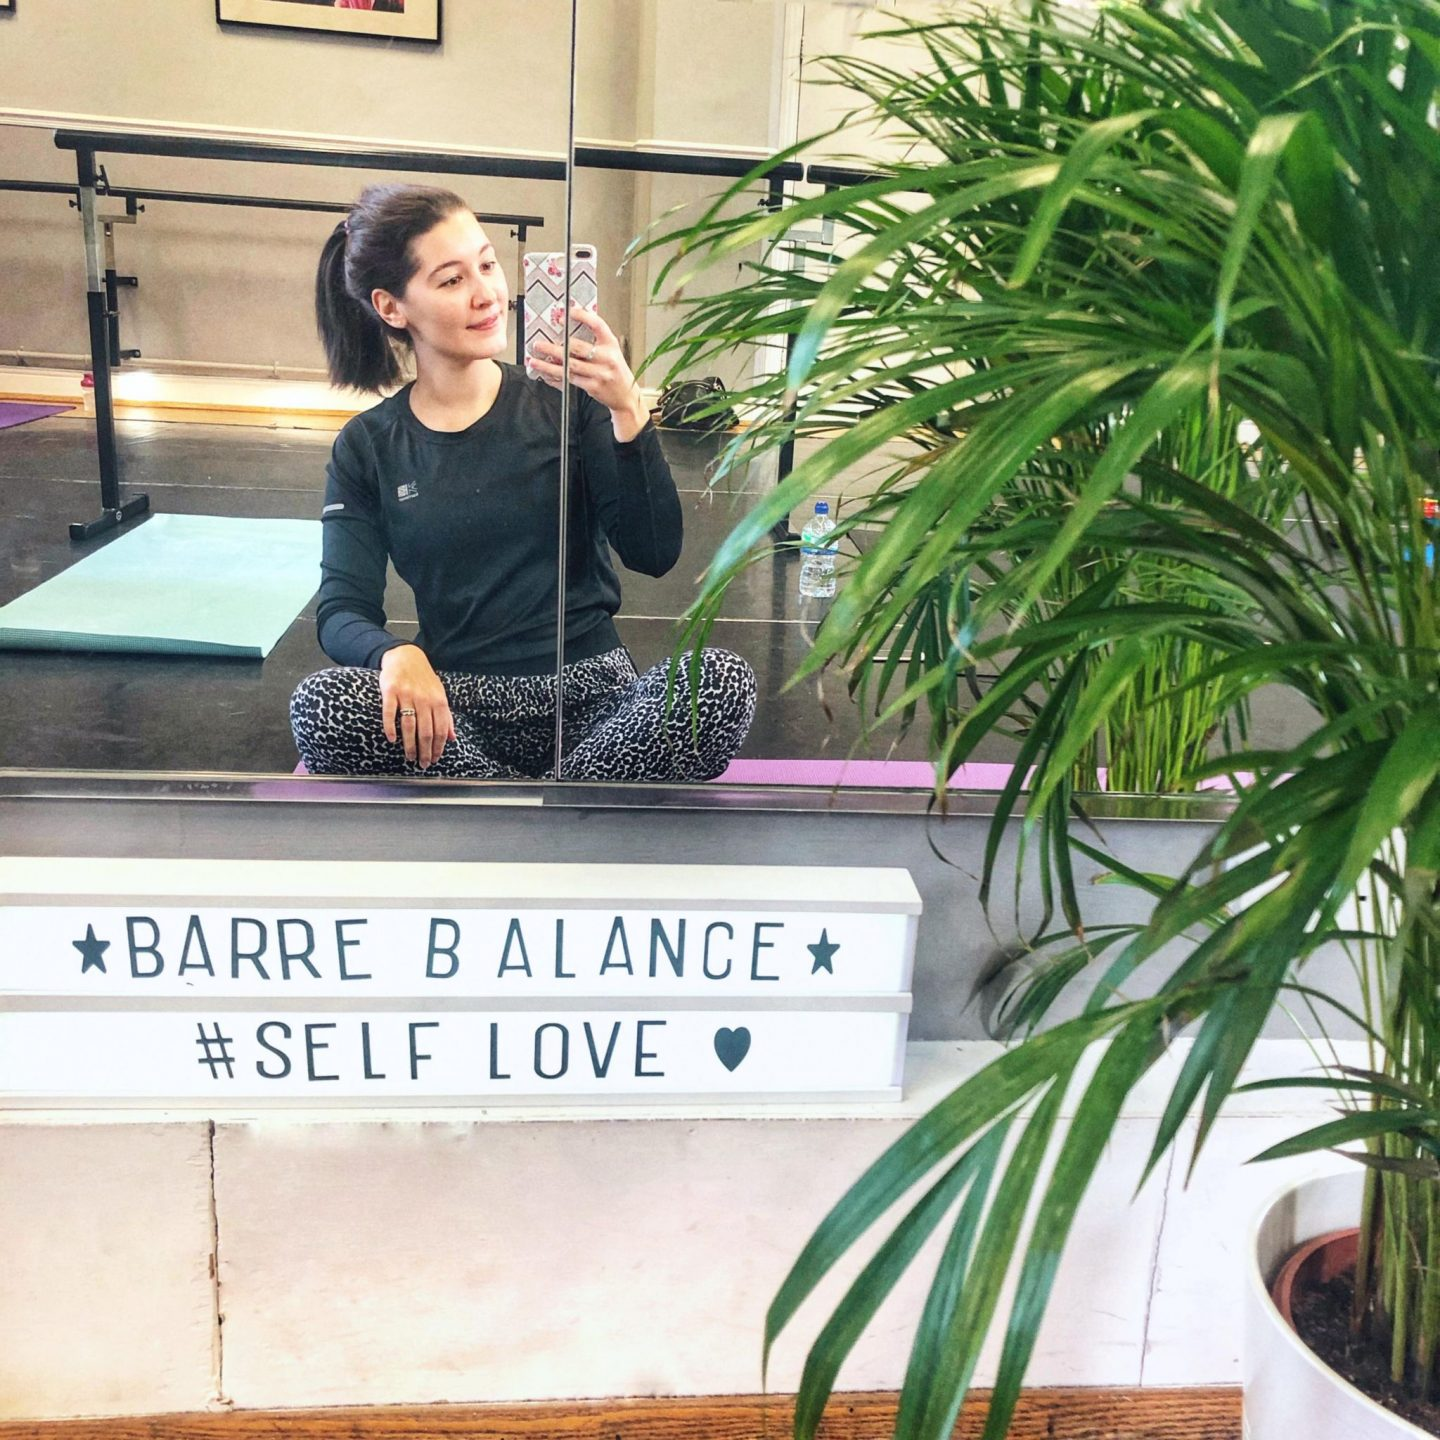 Barre Balance Liverpool – My Experience So Far